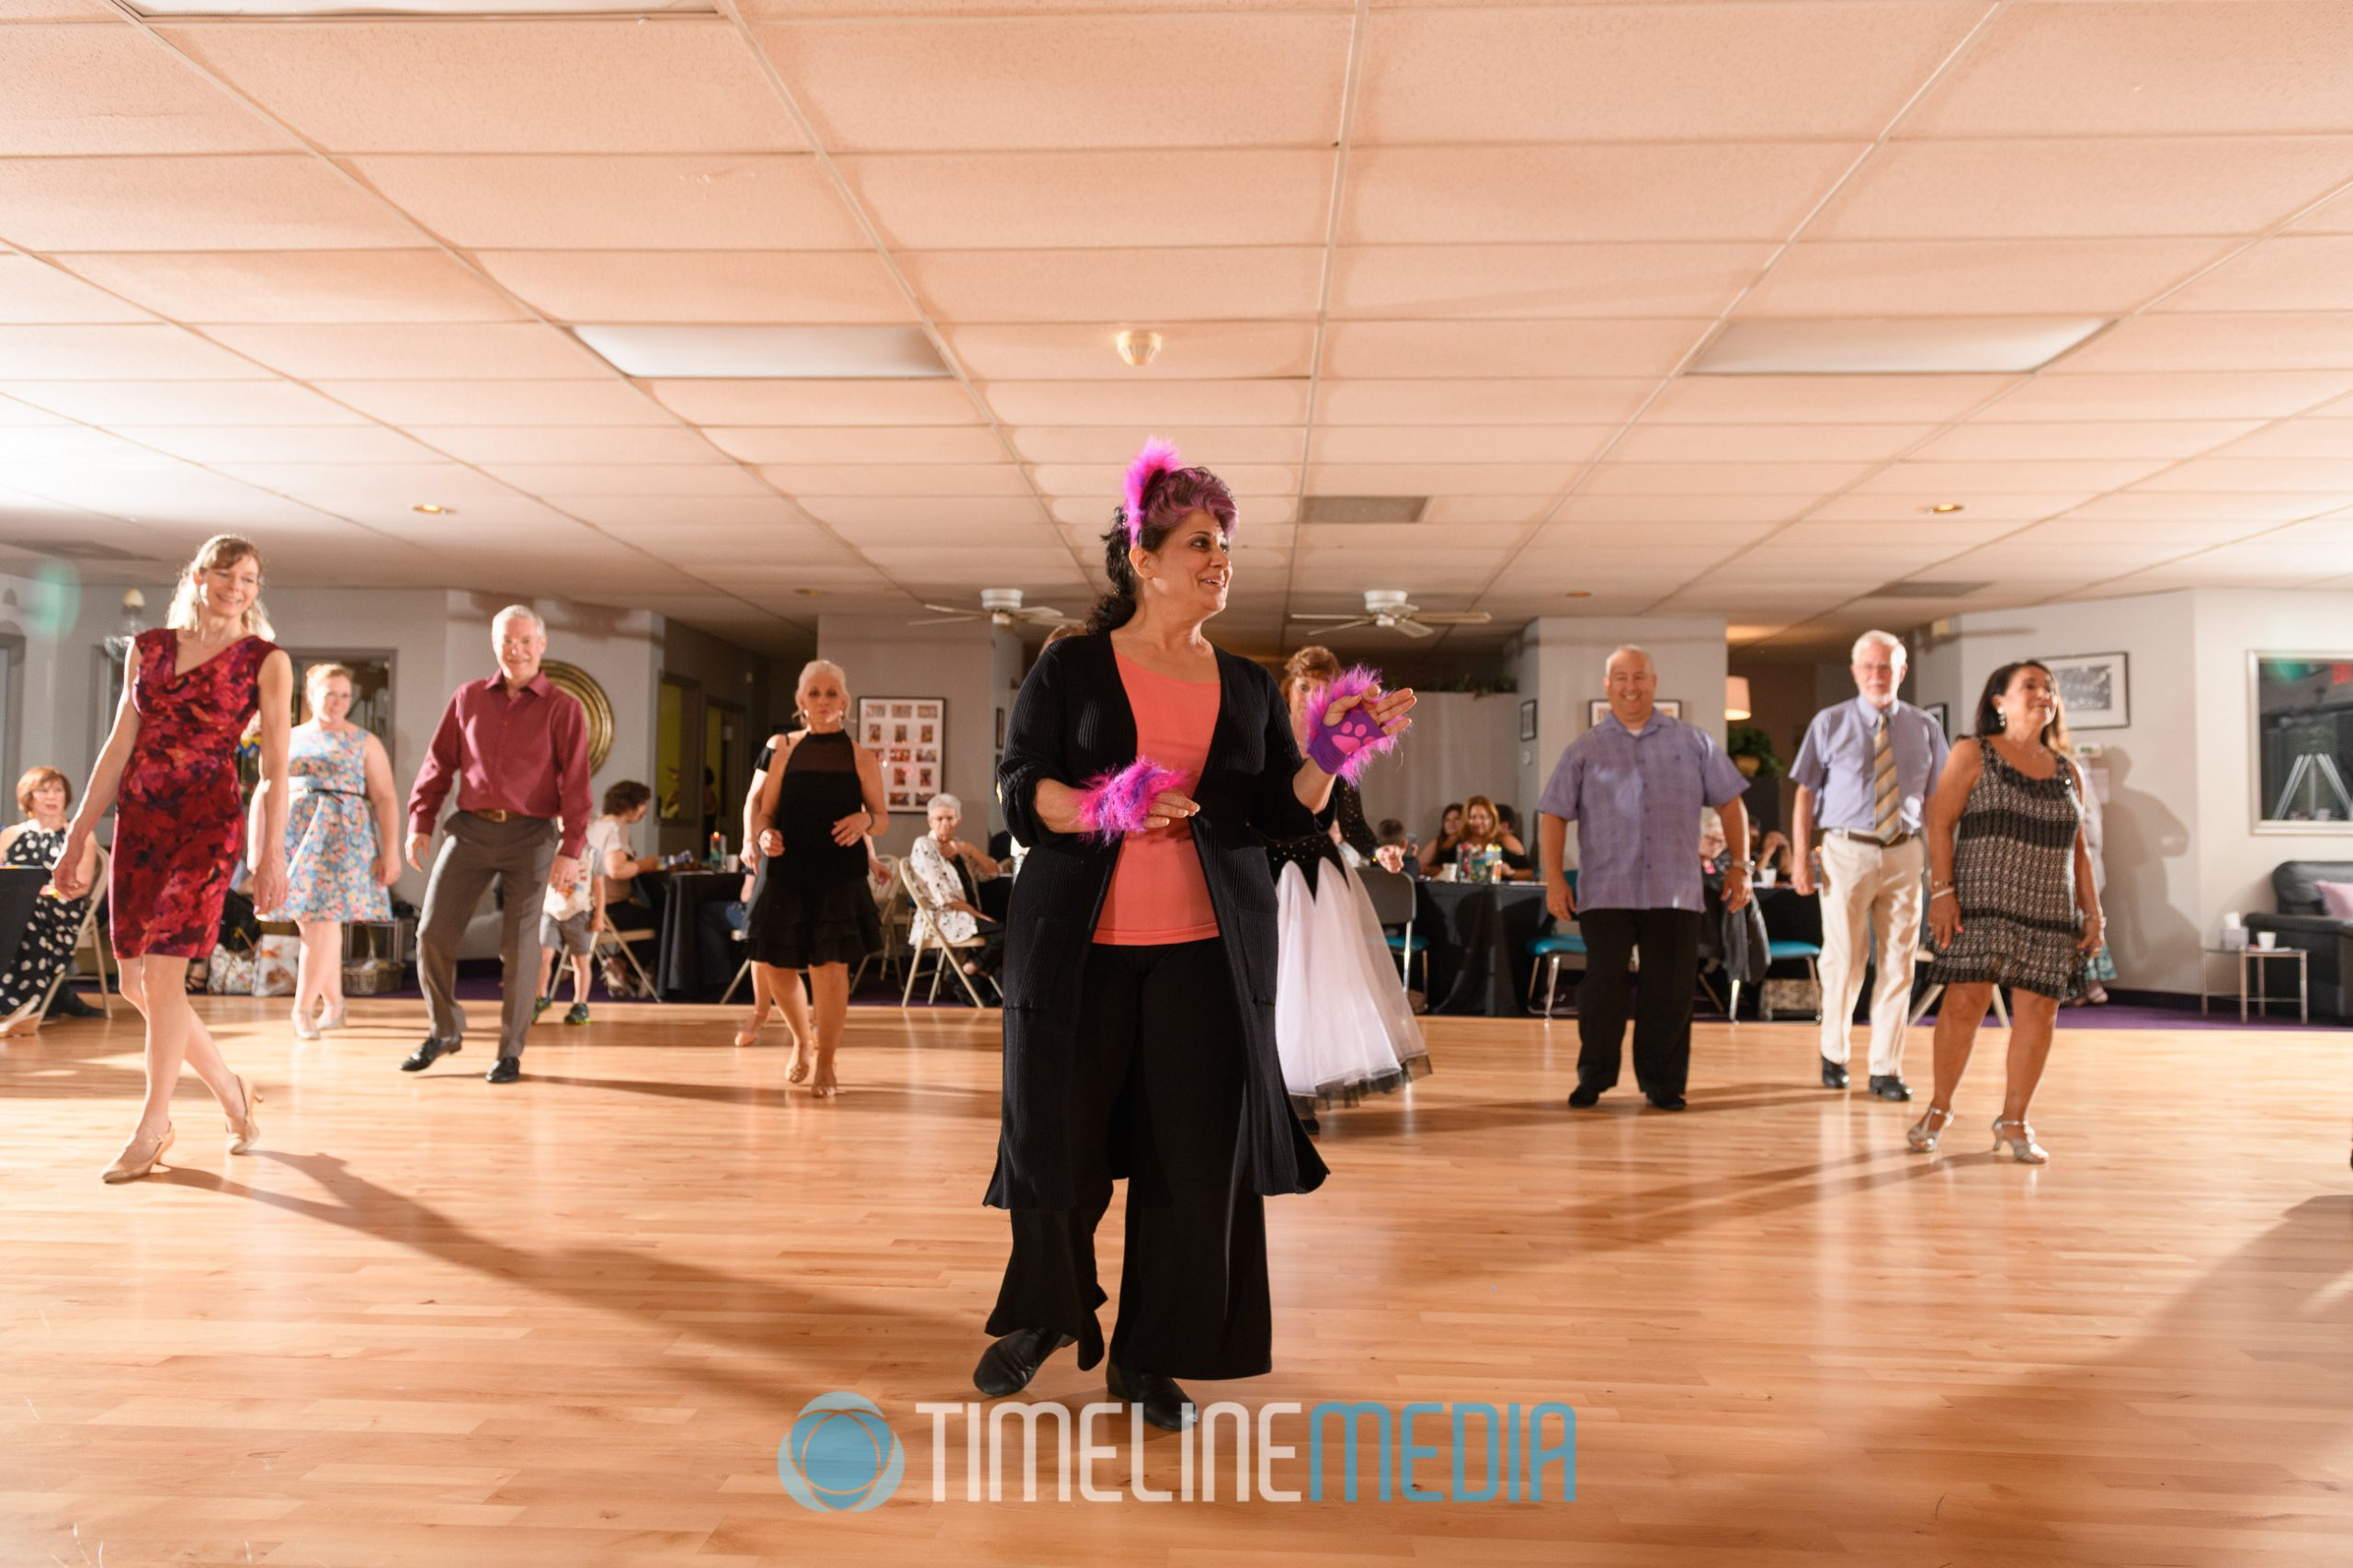 Line Dancing at That's Dancing studio in Jessup, MD ©TimeLine Media